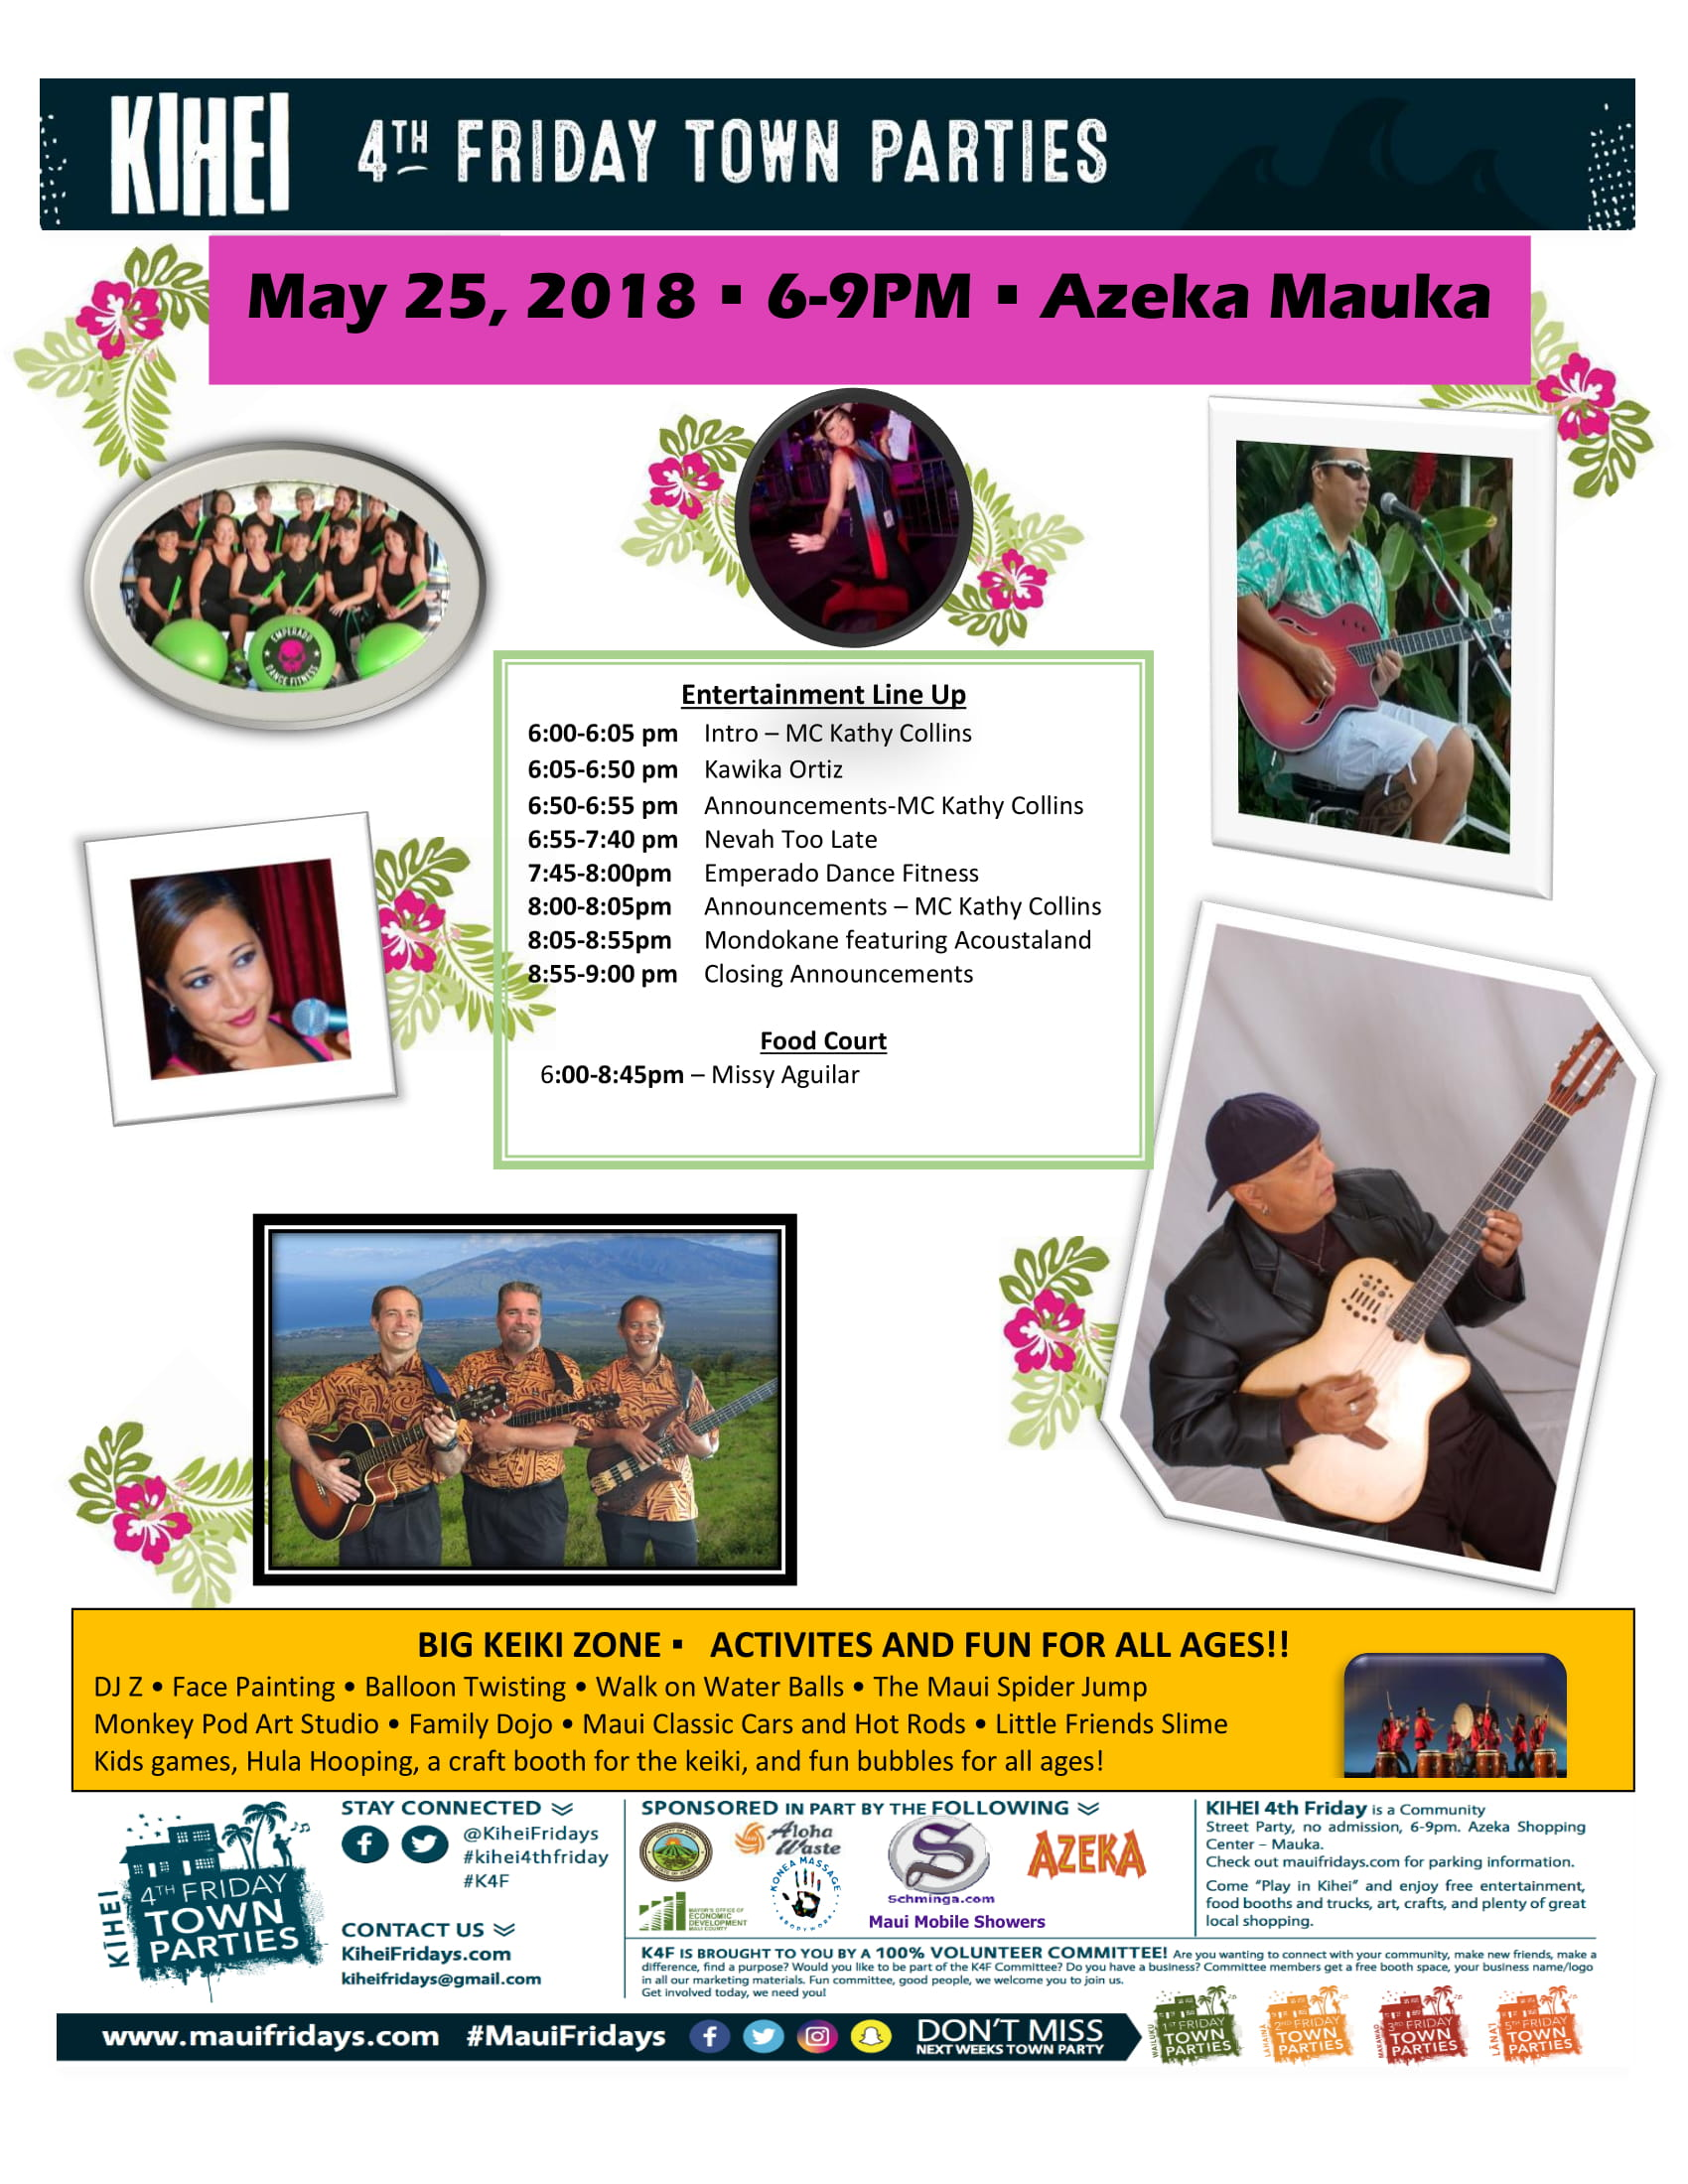 Kihei 4th Friday Announces Live Entertainment